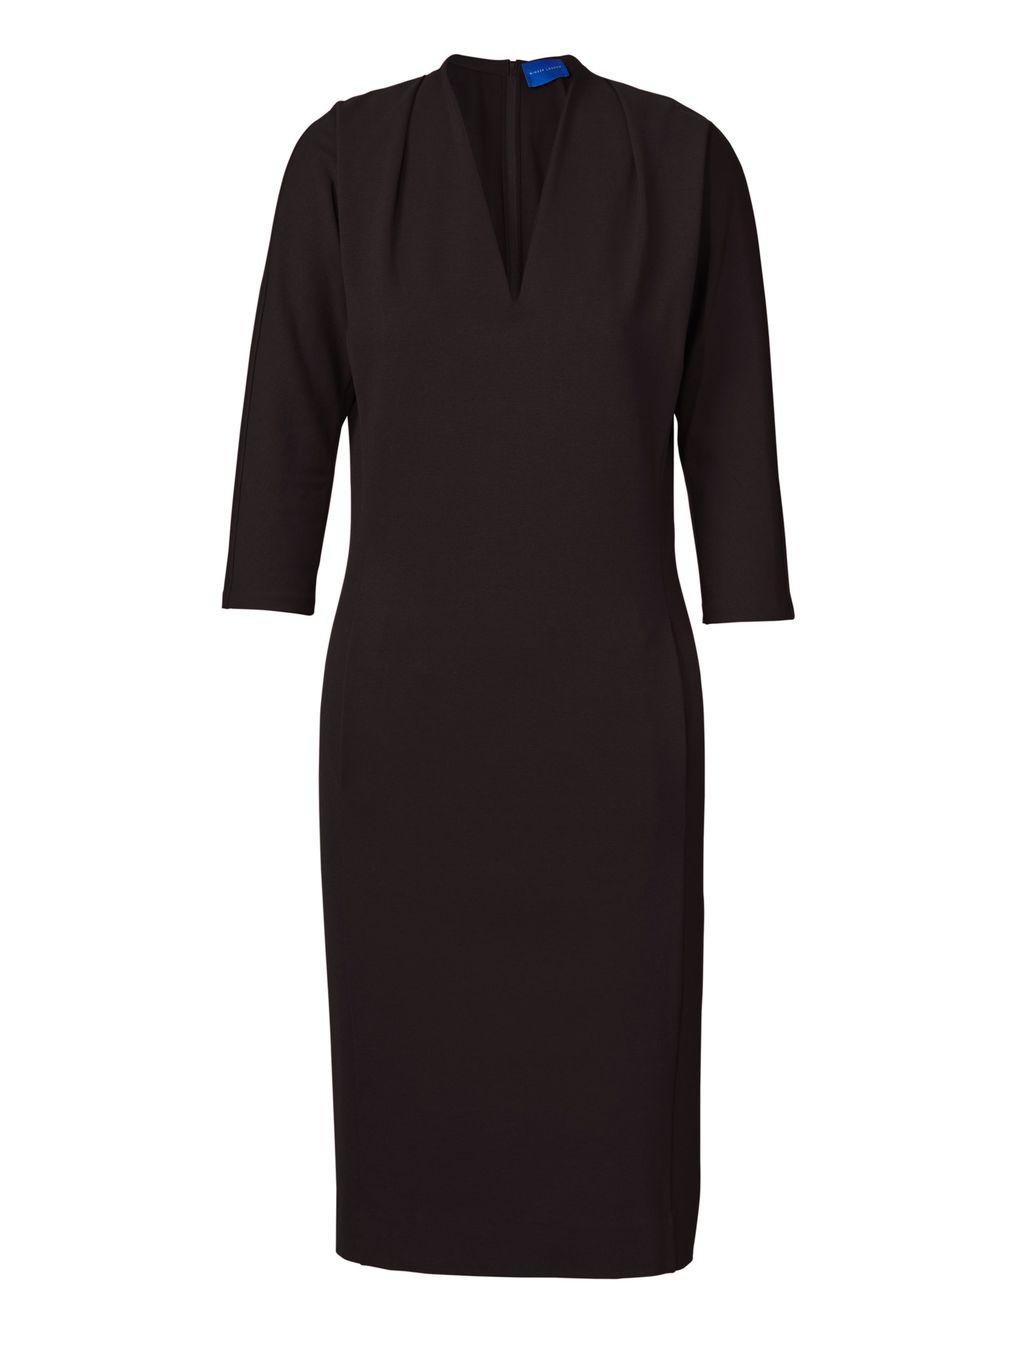 Katherine Miracle Dress, Black - style: shift; neckline: v-neck; fit: tailored/fitted; pattern: plain; predominant colour: black; occasions: evening, work, creative work; length: just above the knee; fibres: polyester/polyamide - 100%; sleeve length: 3/4 length; sleeve style: standard; texture group: crepes; pattern type: fabric; season: s/s 2016; wardrobe: investment